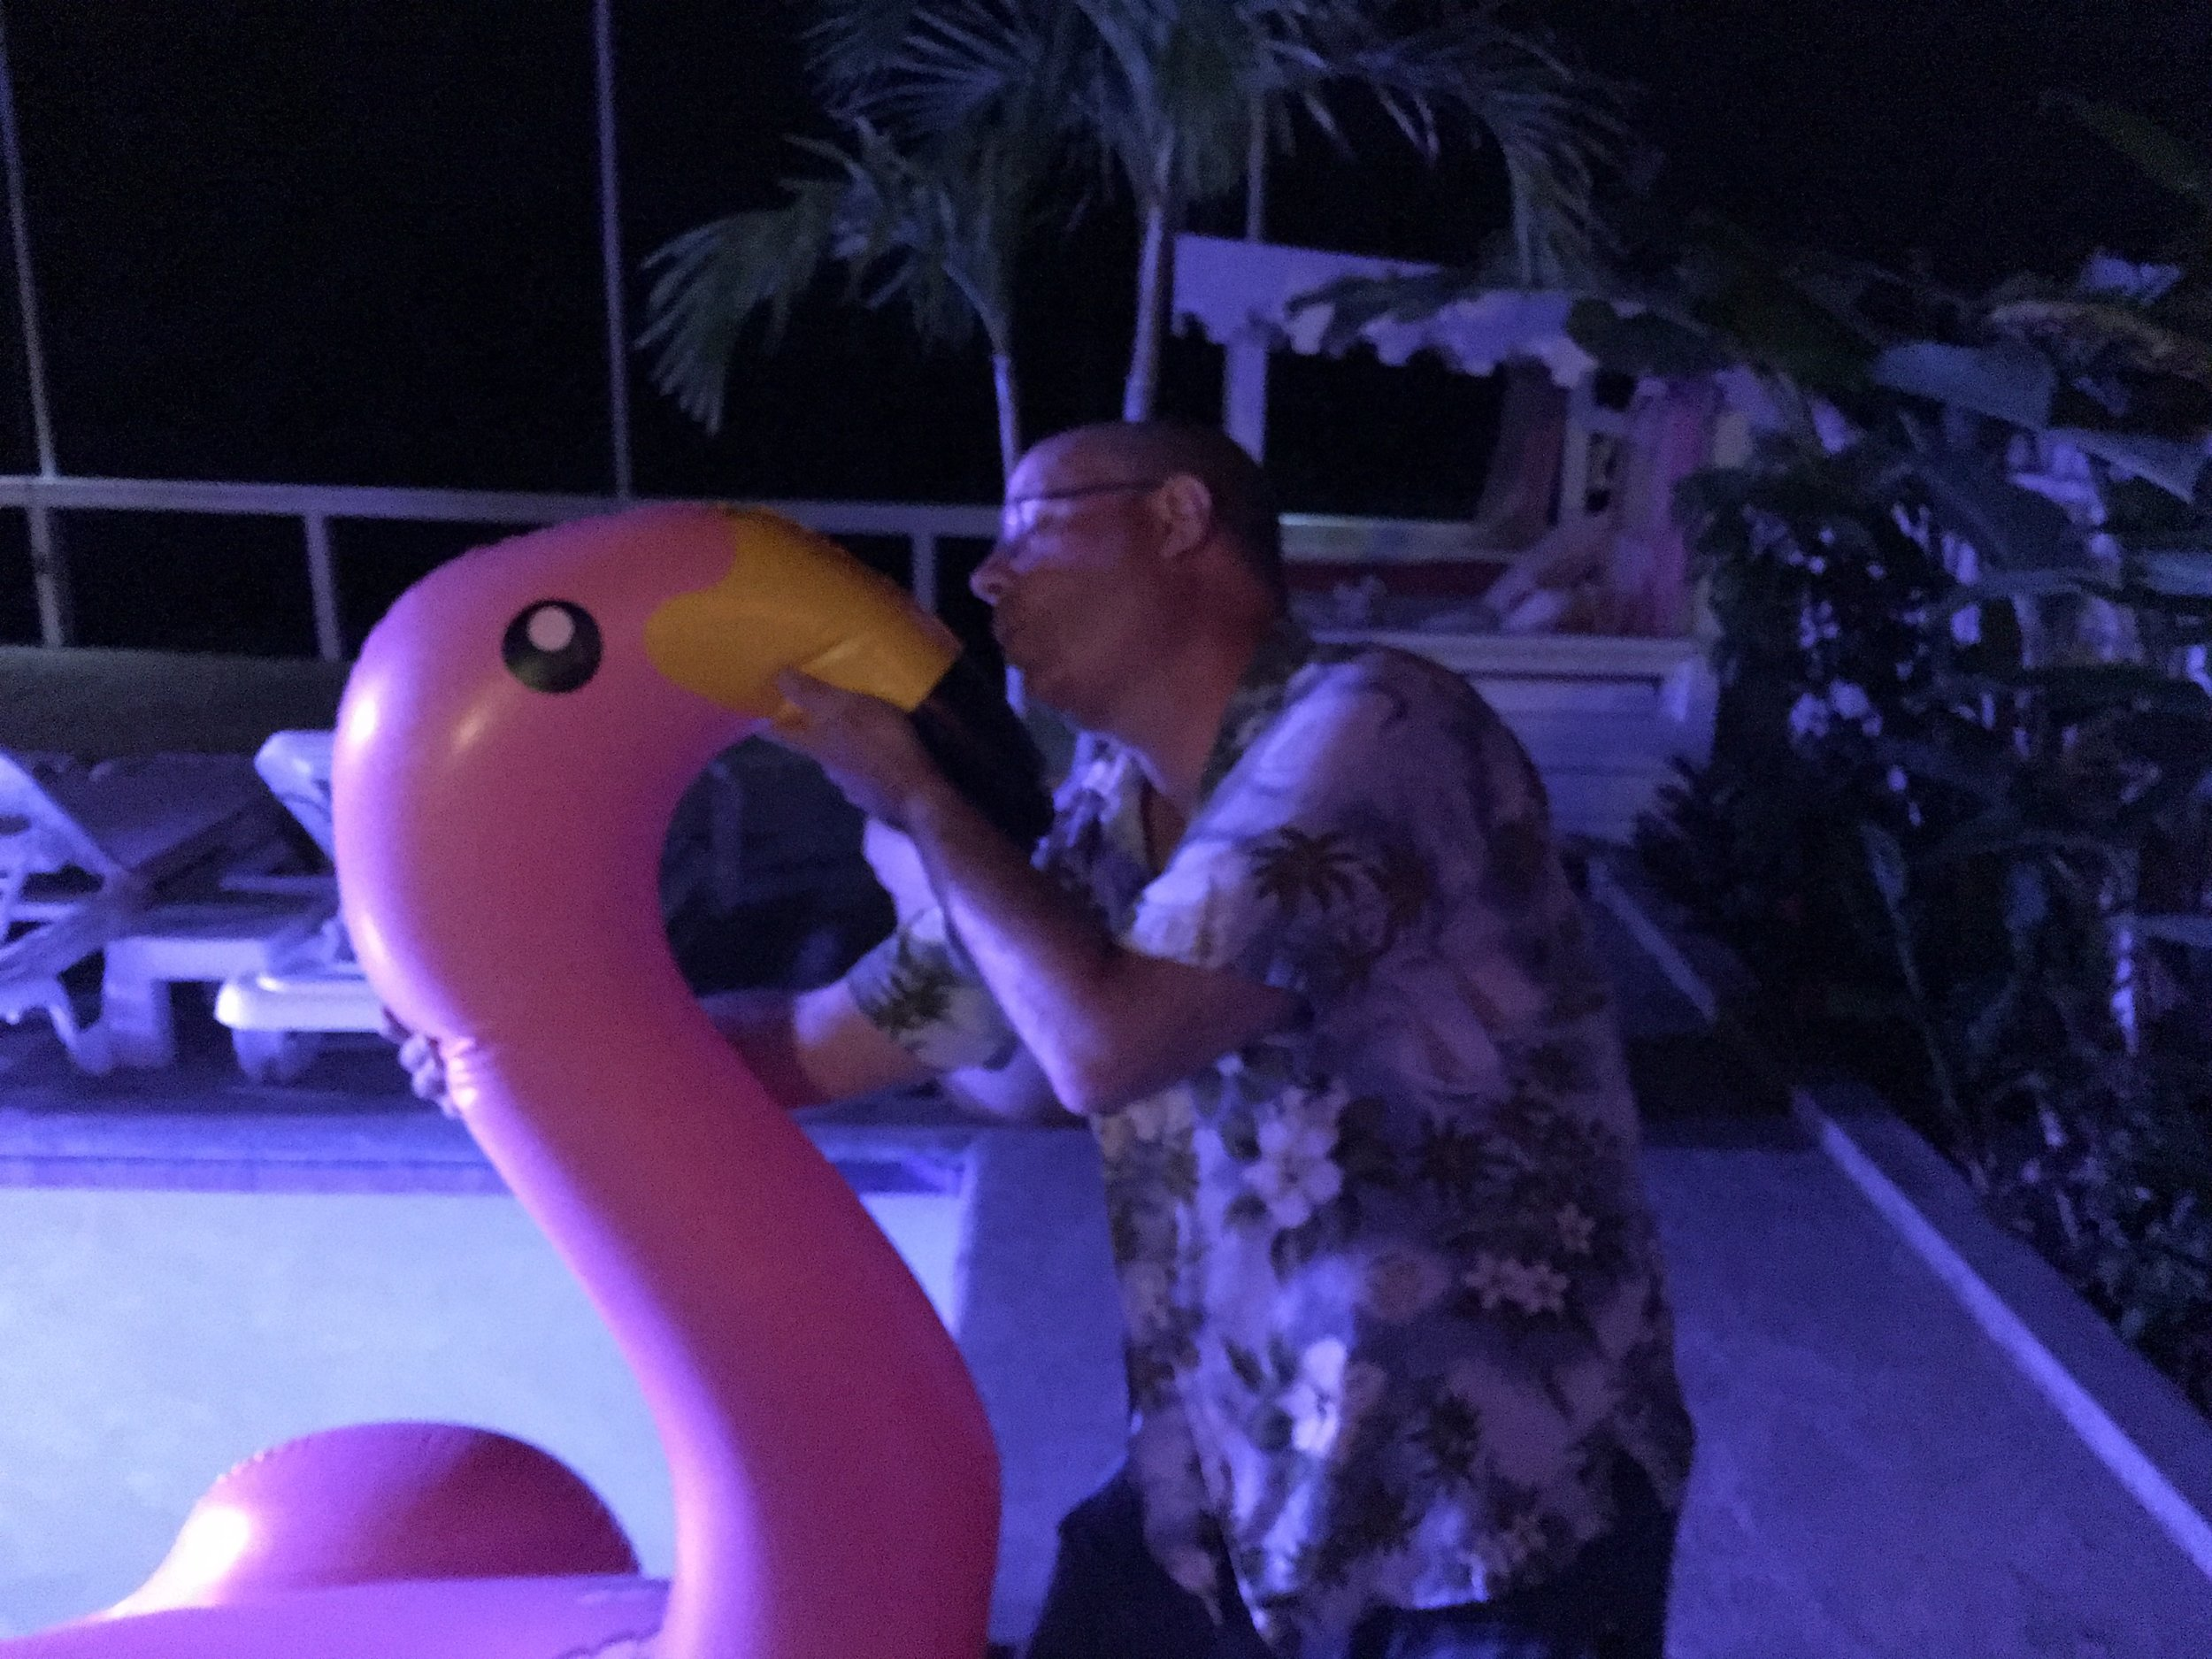 Flamingos are Bonaire's bird, so I figured I should pay my respects...